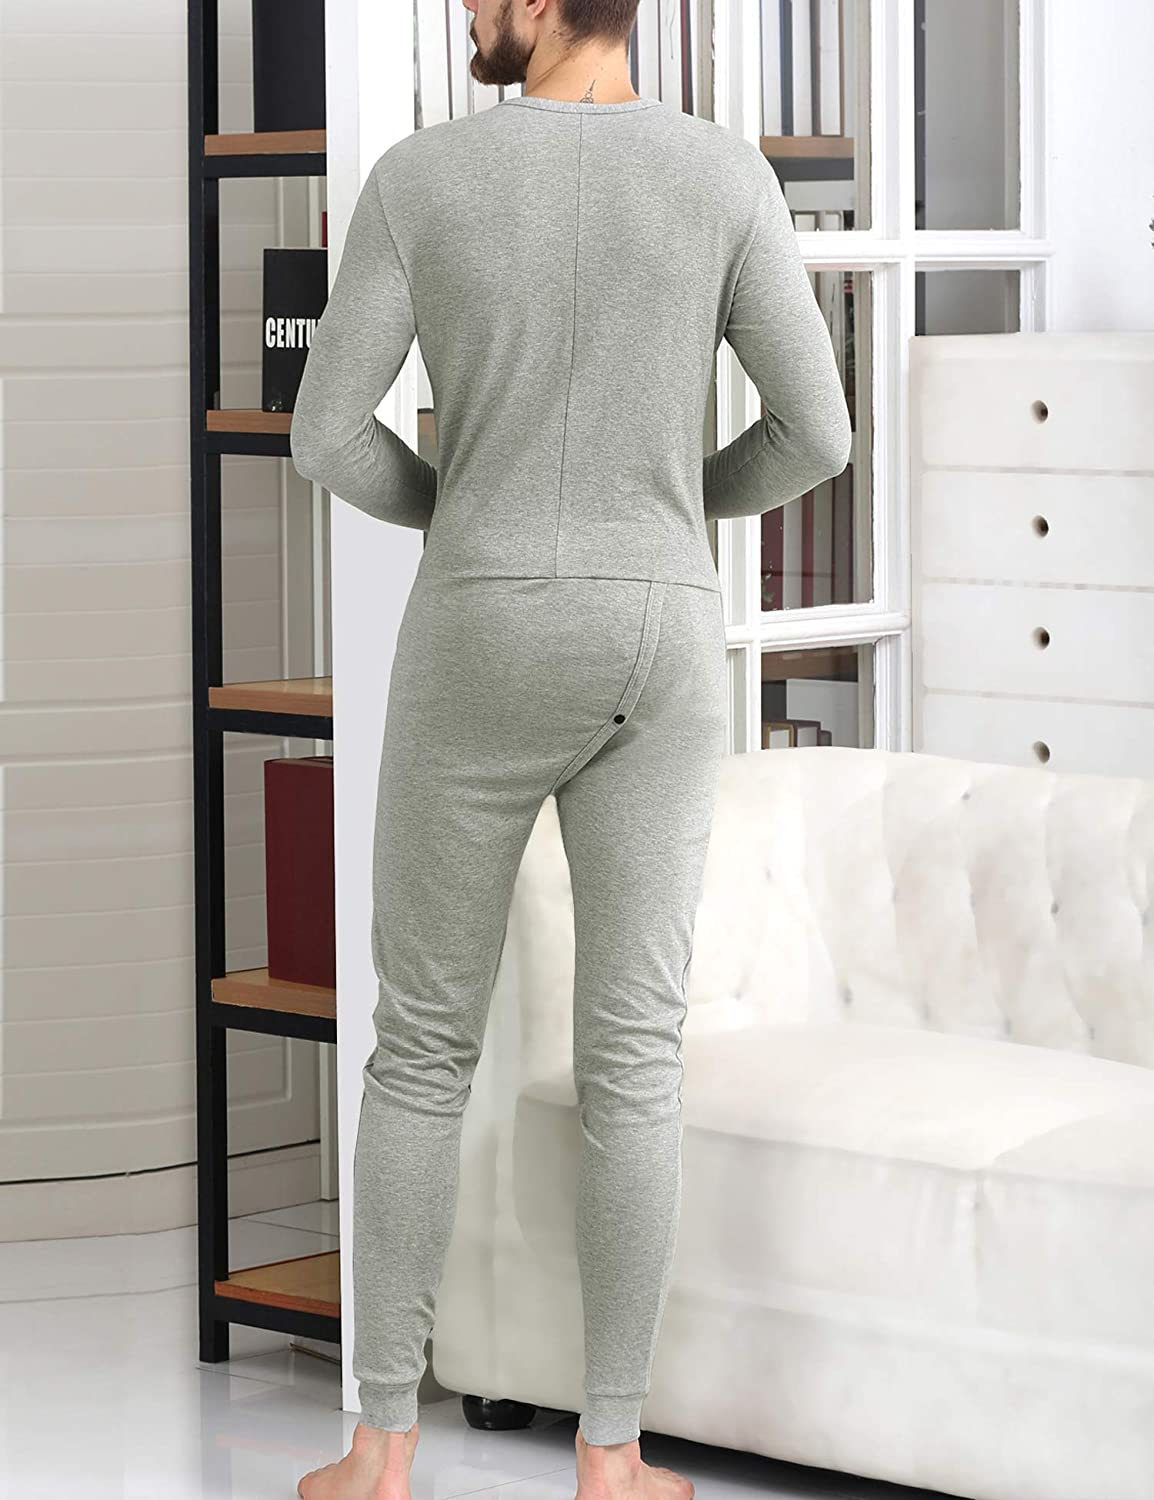 COLORFULLEAF Mens Cotton Thermal Underwear Union Suits Henley Onesies Base Layer